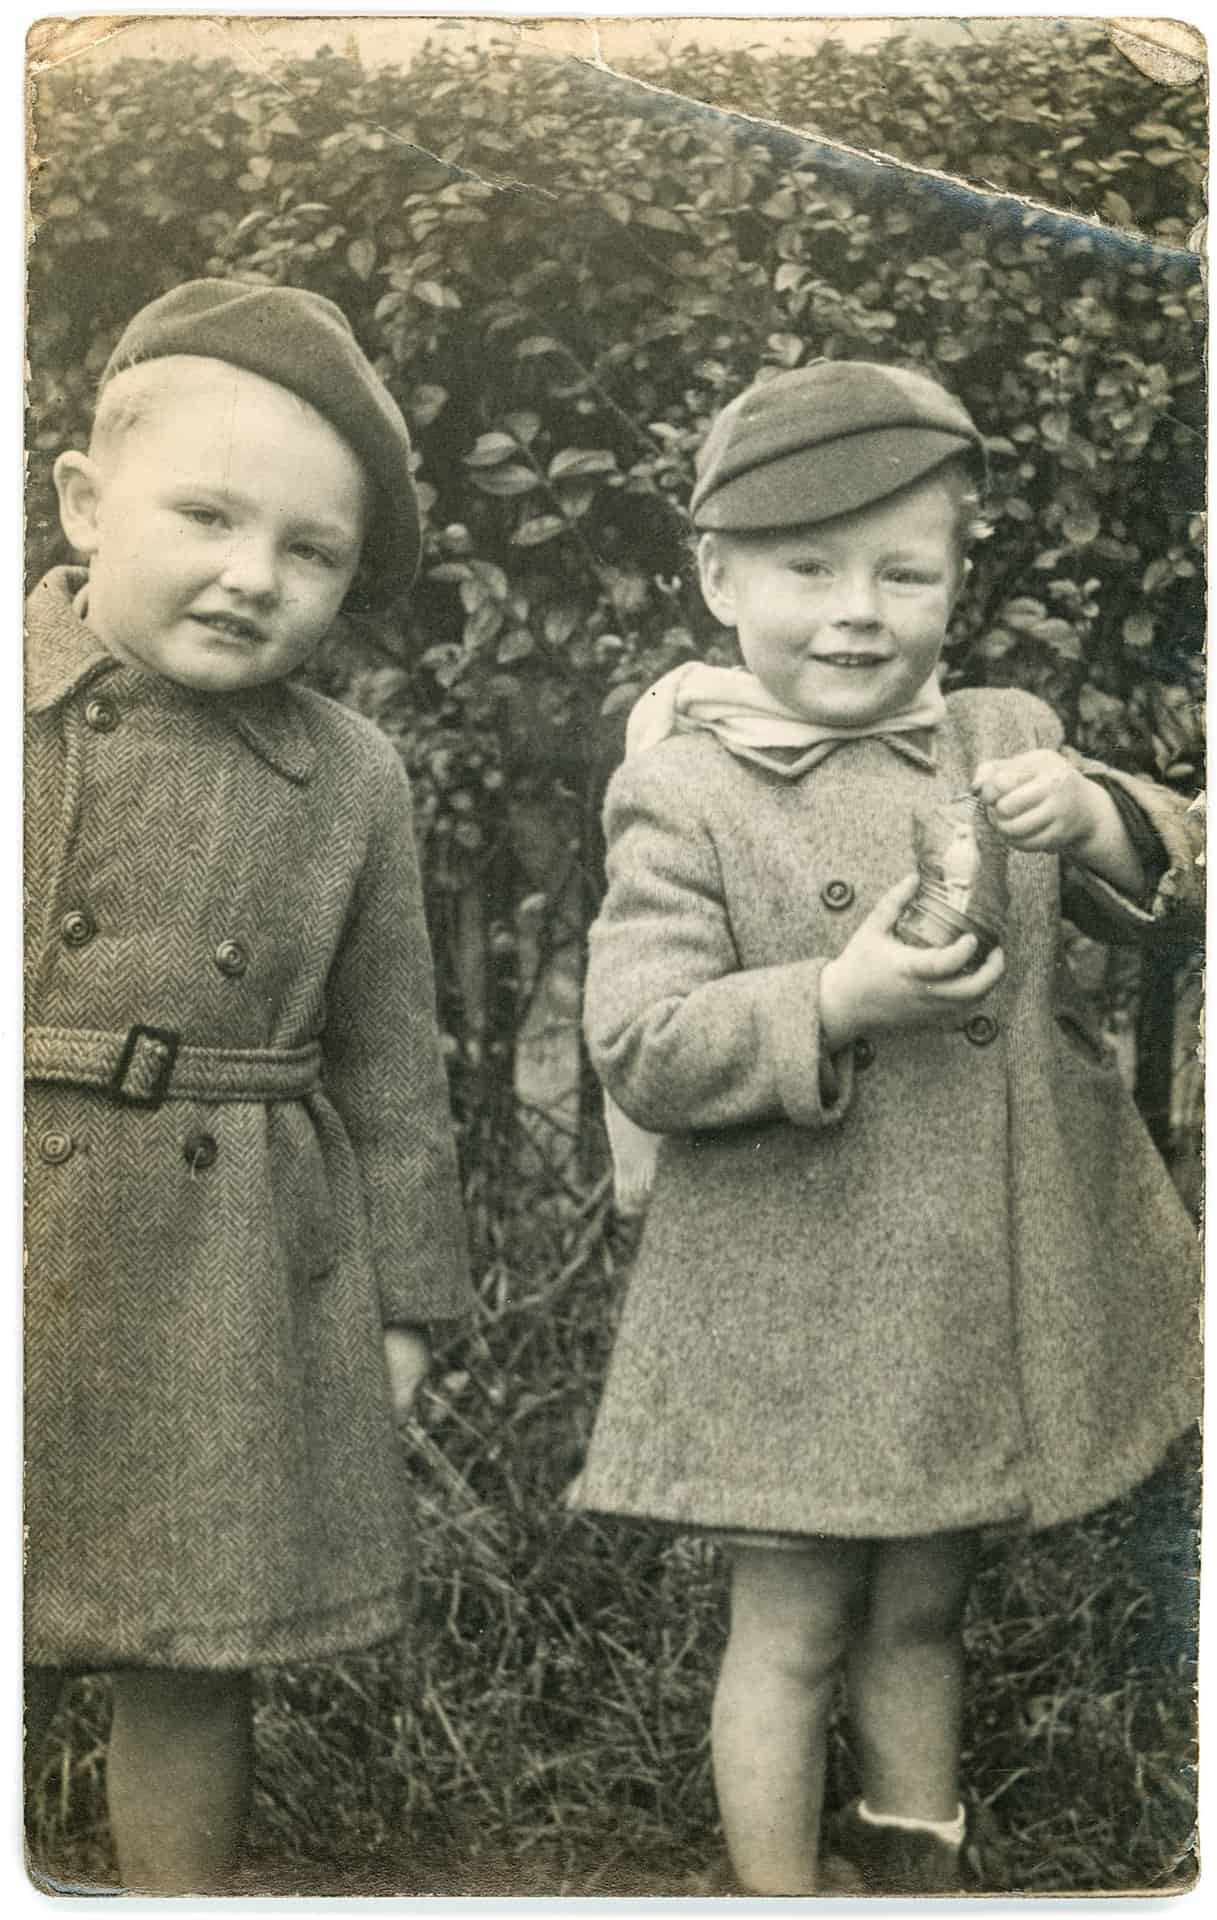 Phillip Hodgkinson and me in around 1954